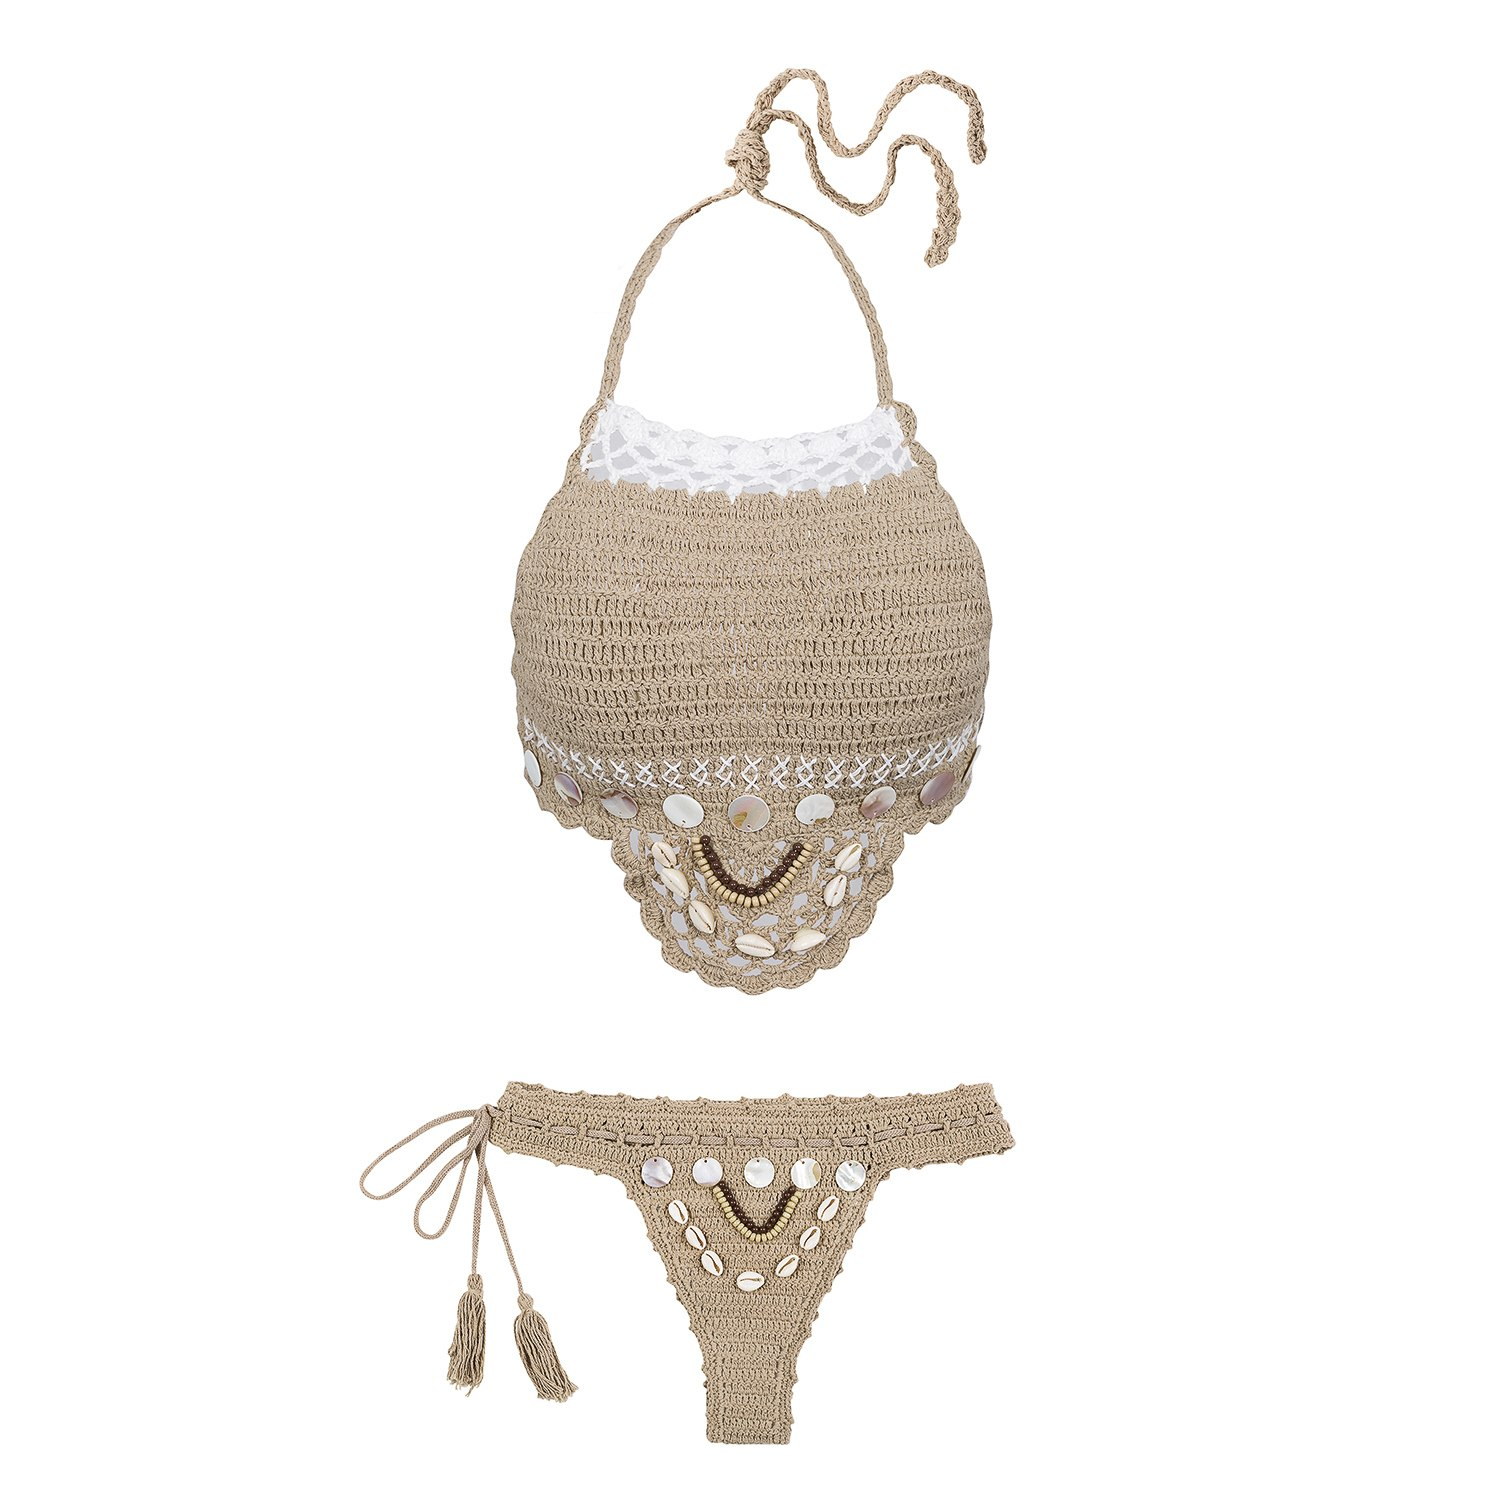 Handmade Crochet Bikinis, 2019 Sexy Tassel Swimsuit,Women's Shell Decorated Swimwear, High Neck 2 Piece Suit 20